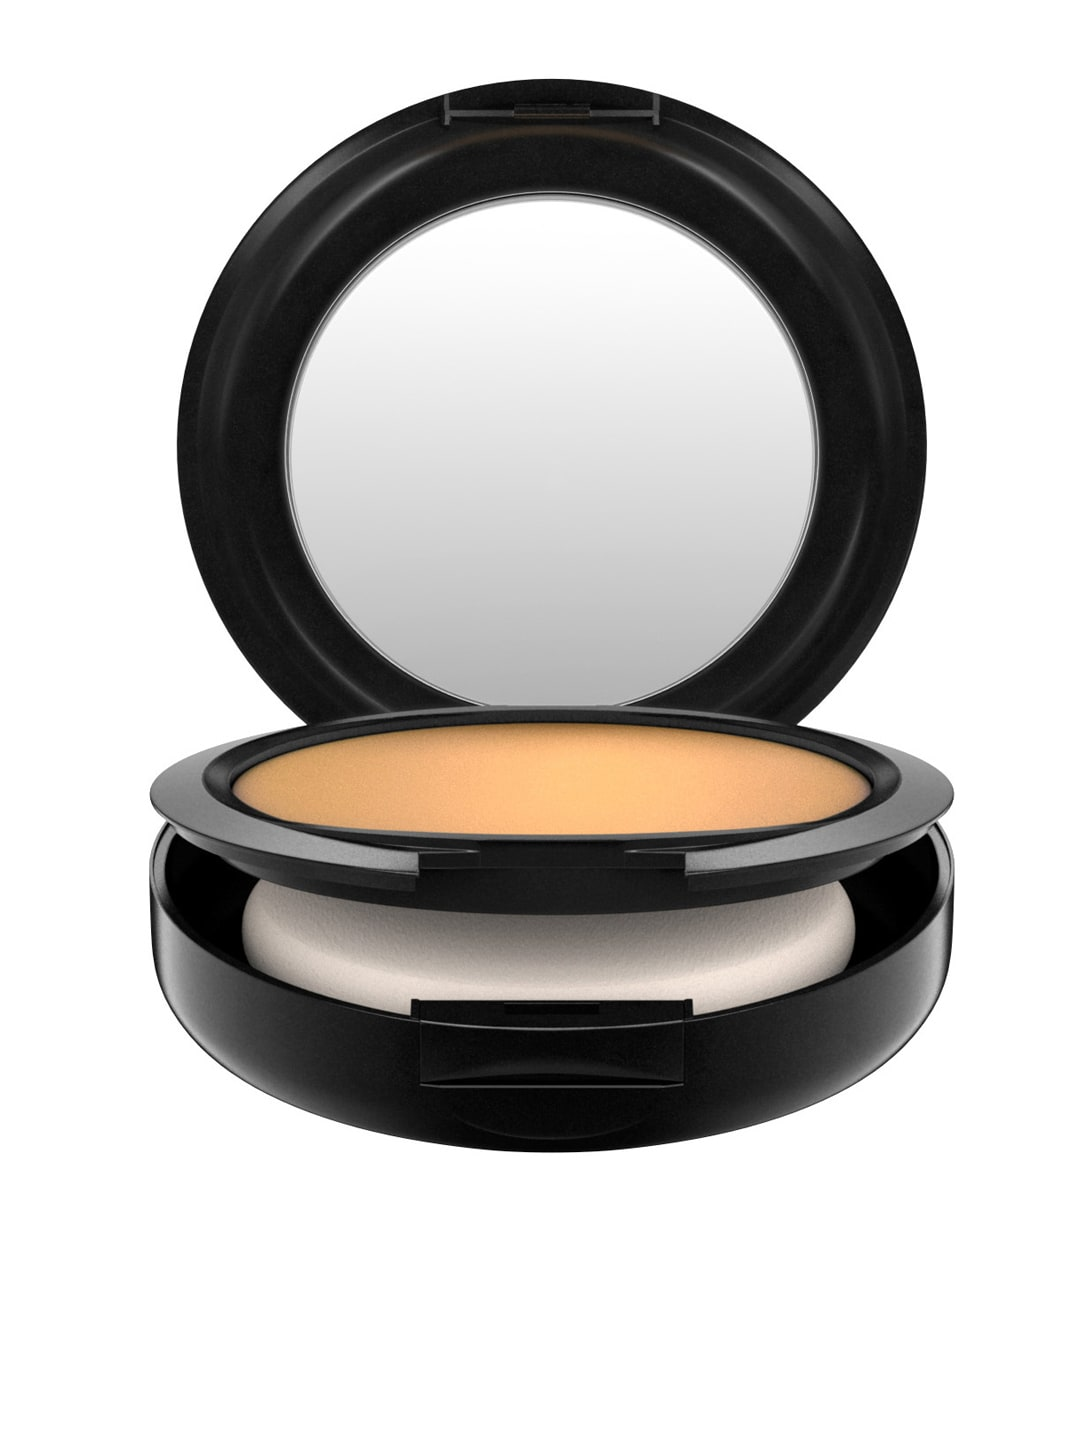 M.A.C NC44.5 Studio Fix Powder Plus Foundation image